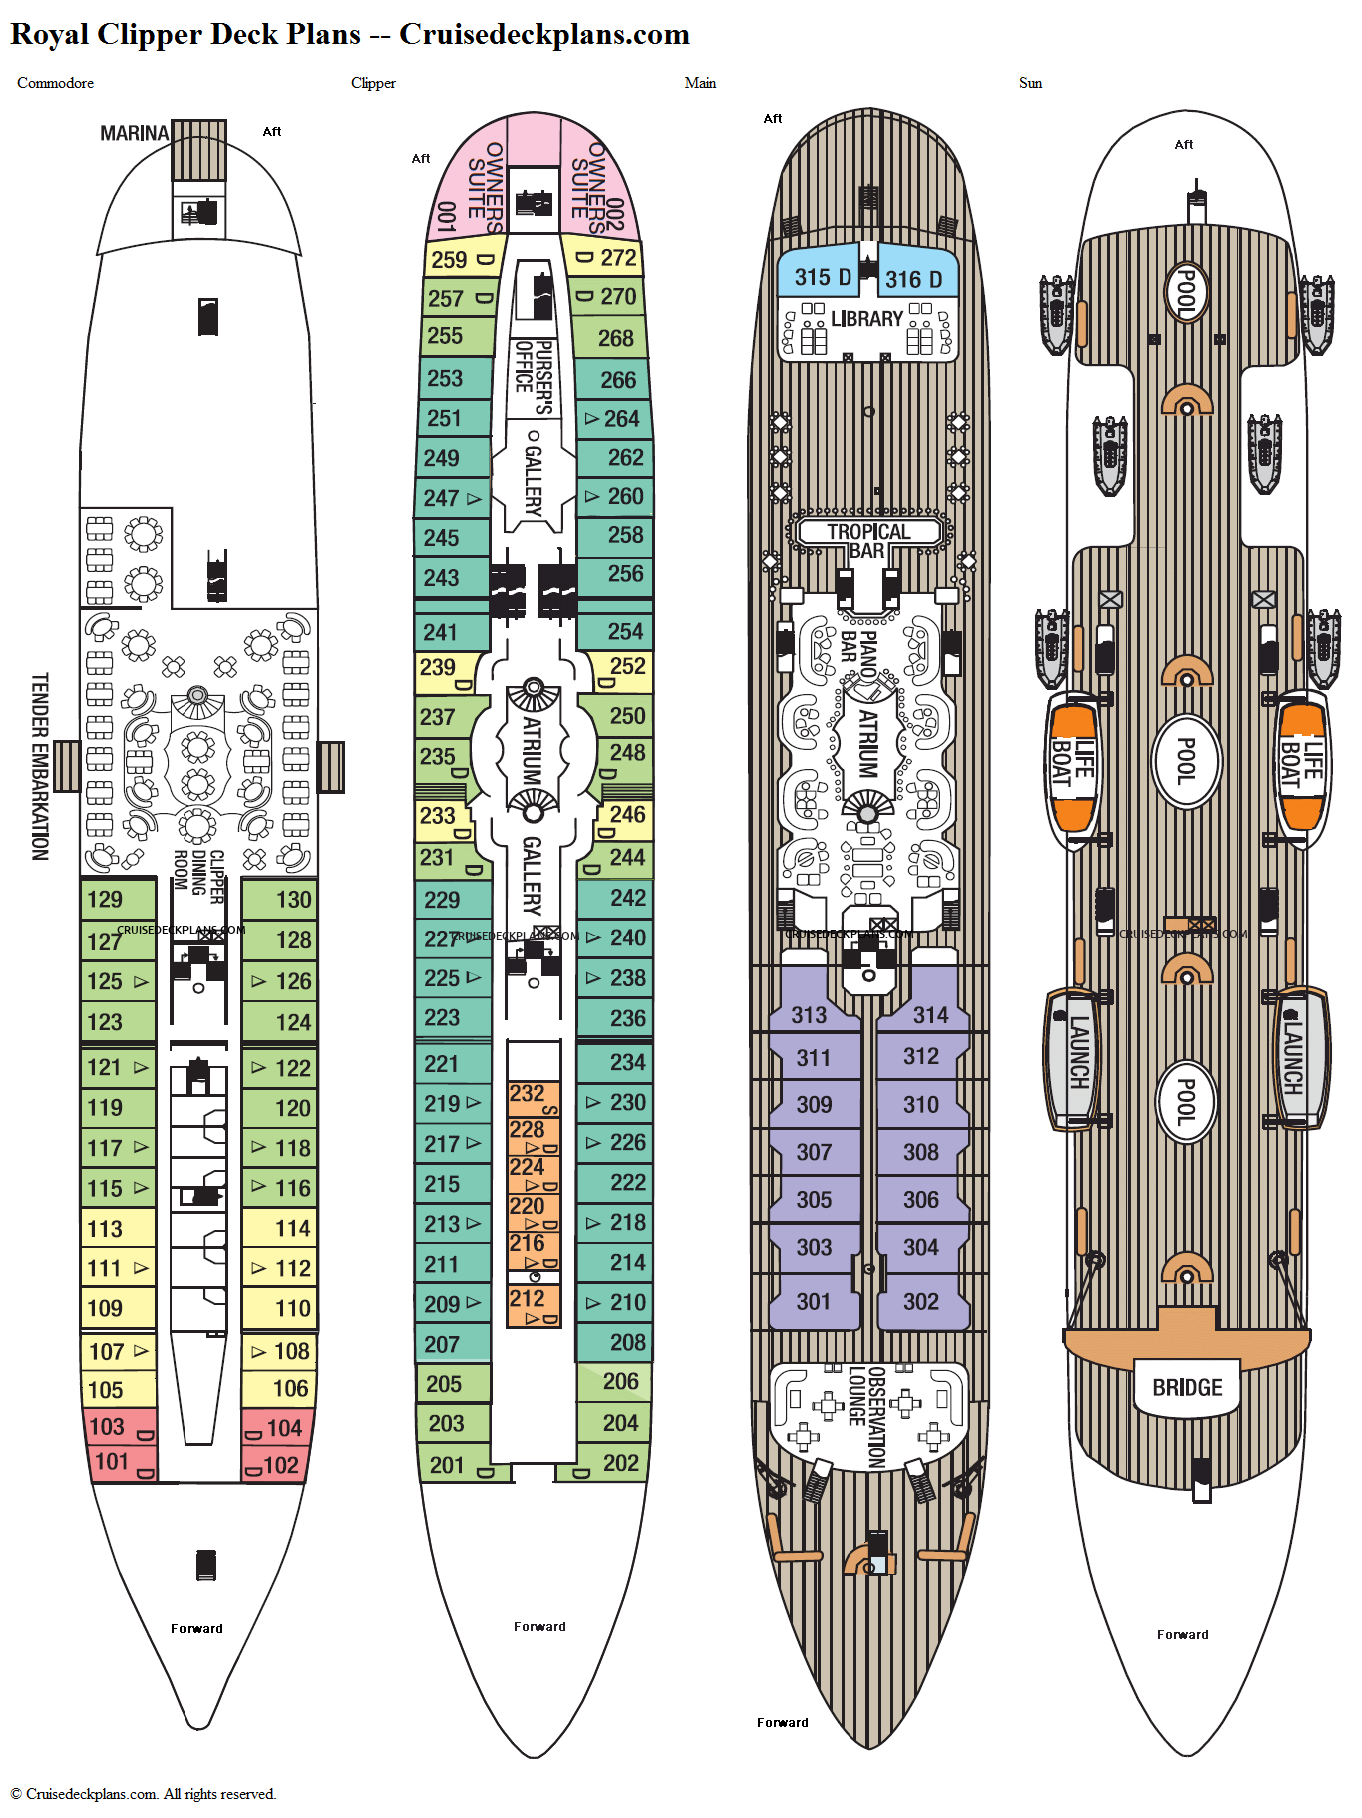 Royal Clipper deck plans image